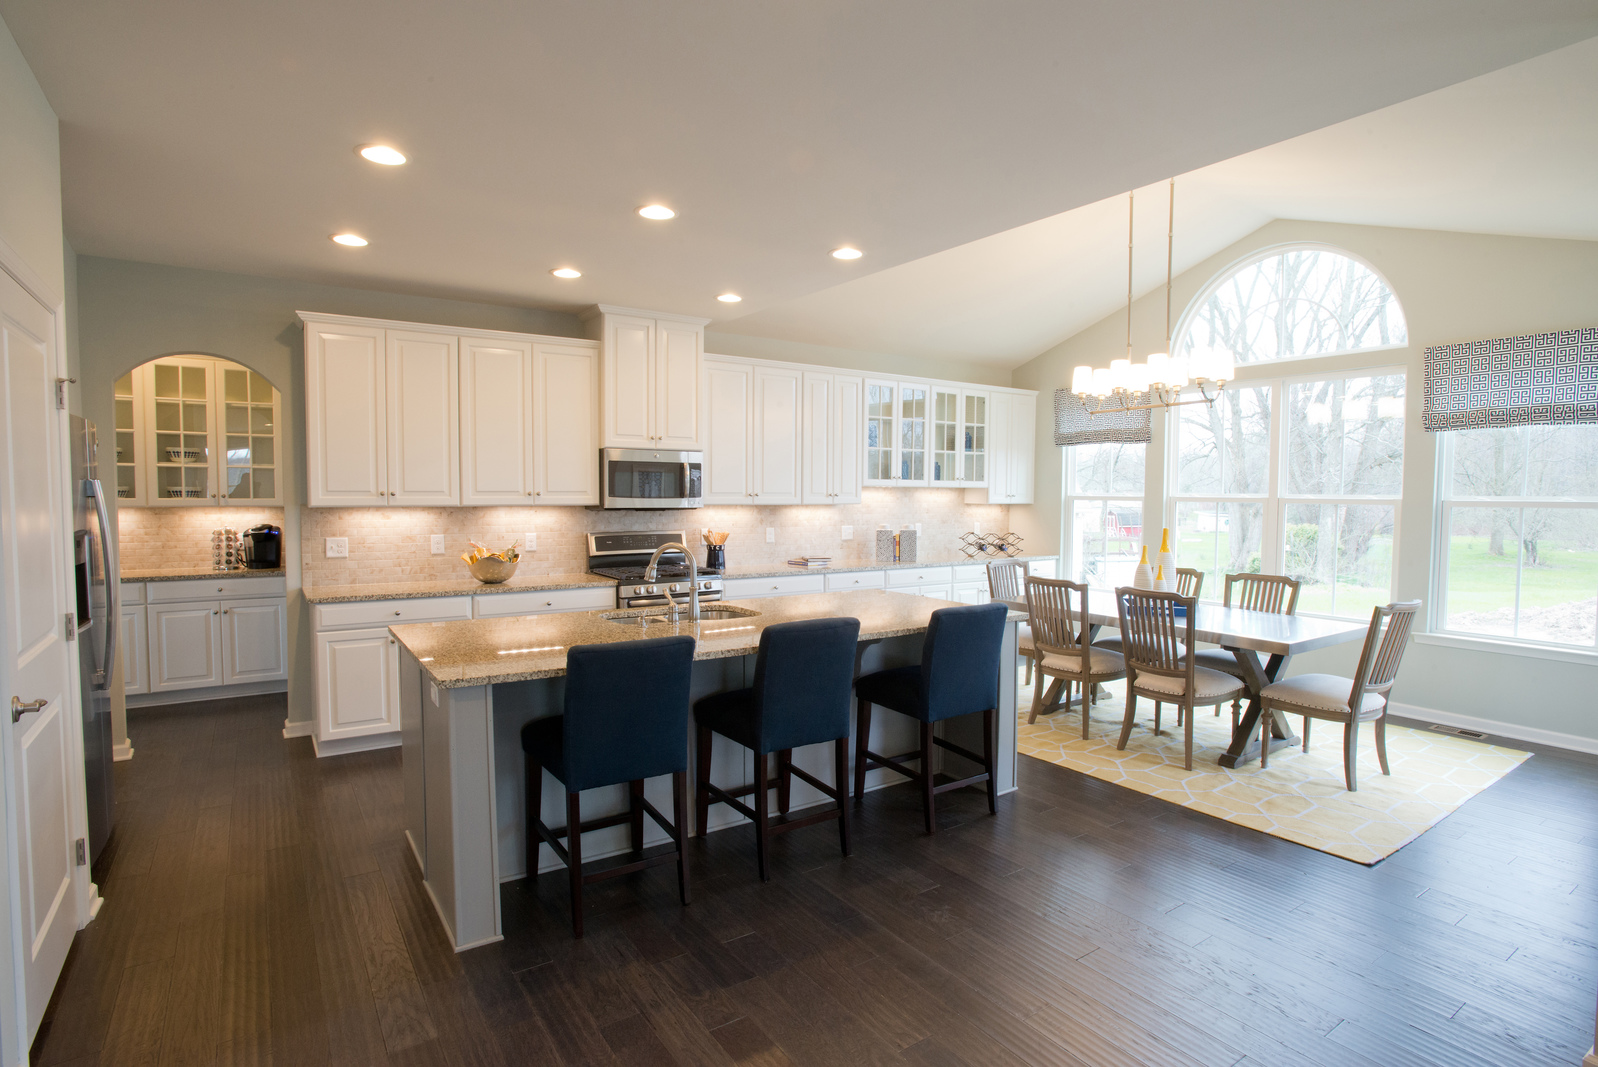 New Homes For Sale At Bexley Hills In Beavercreek Oh